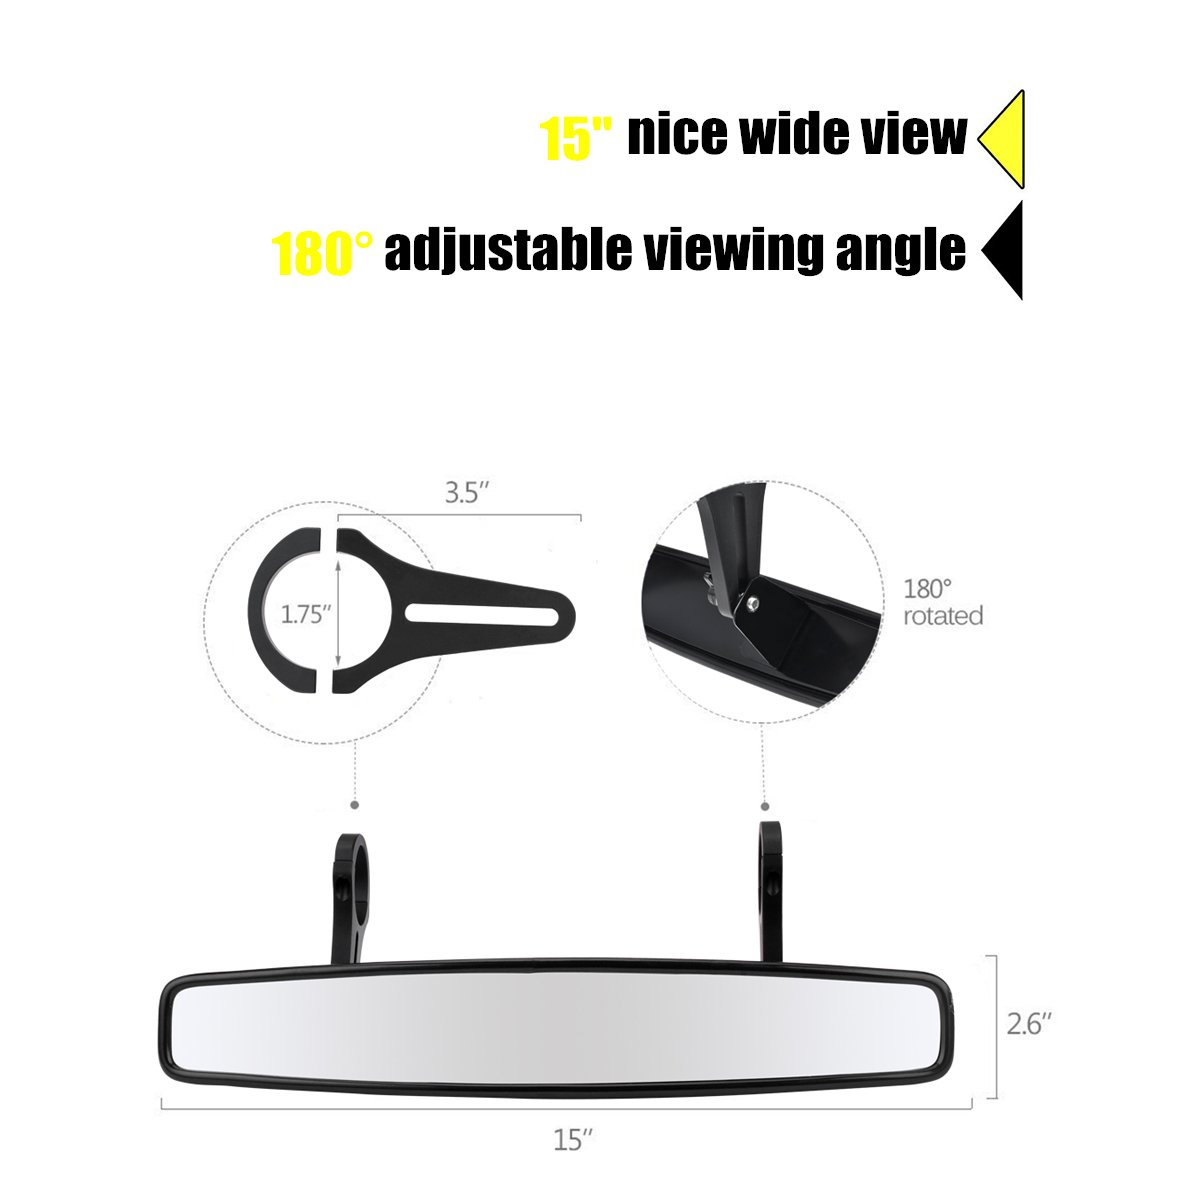 15'' Wide Angle UTV Rear View Race Mirror with Anti-Scratch Shatterproof Glass, Moveland Convex Mirror with 1.75-inch Clamp for Polaris RZR 800 1000 S 900 XP 1000 and More by moveland (Image #2)